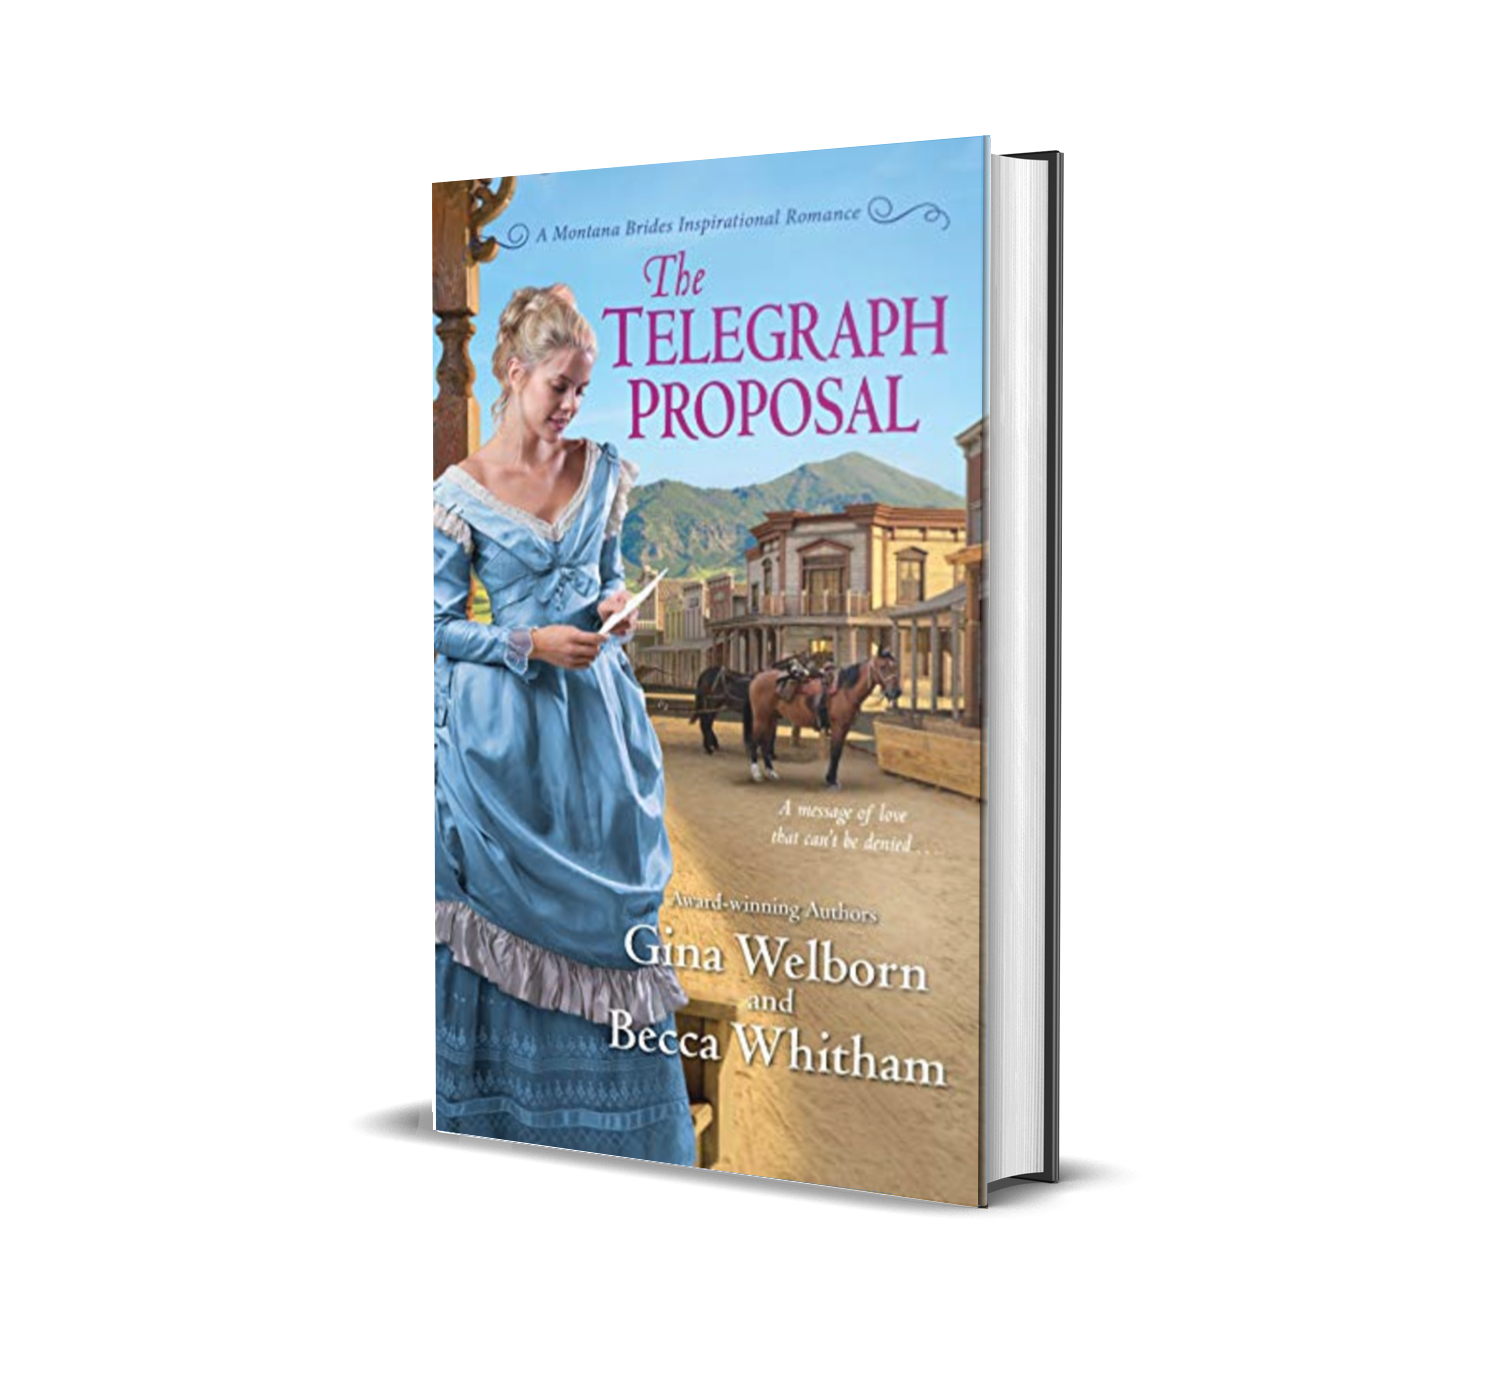 The Telegraph Proposal  by Gina Welborn, Becca Whitham